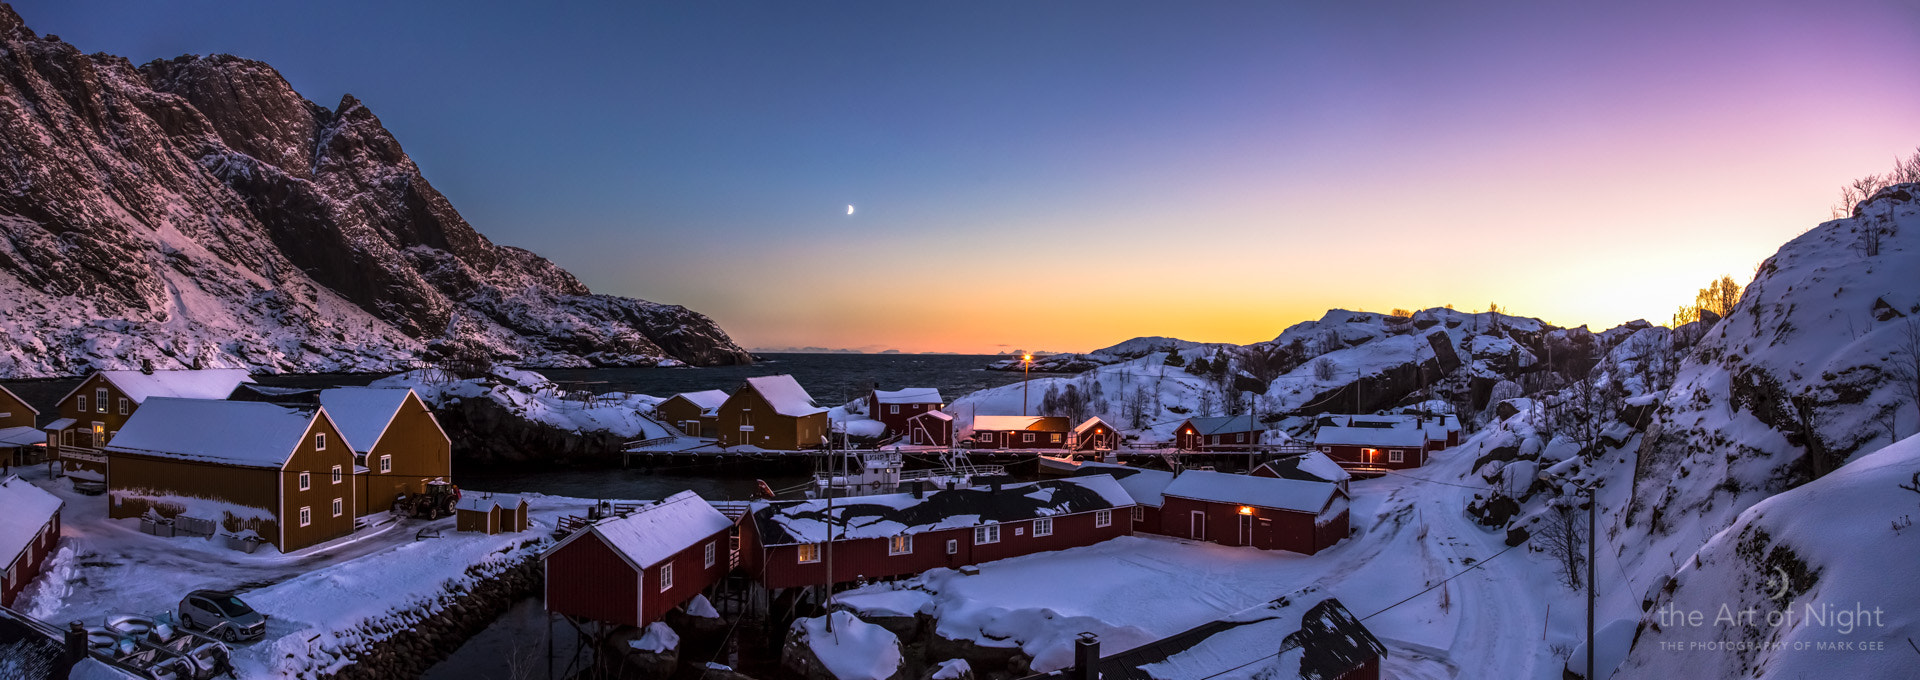 Photograph Arctic Twilight Over Nusfjord by Mark Gee on 500px